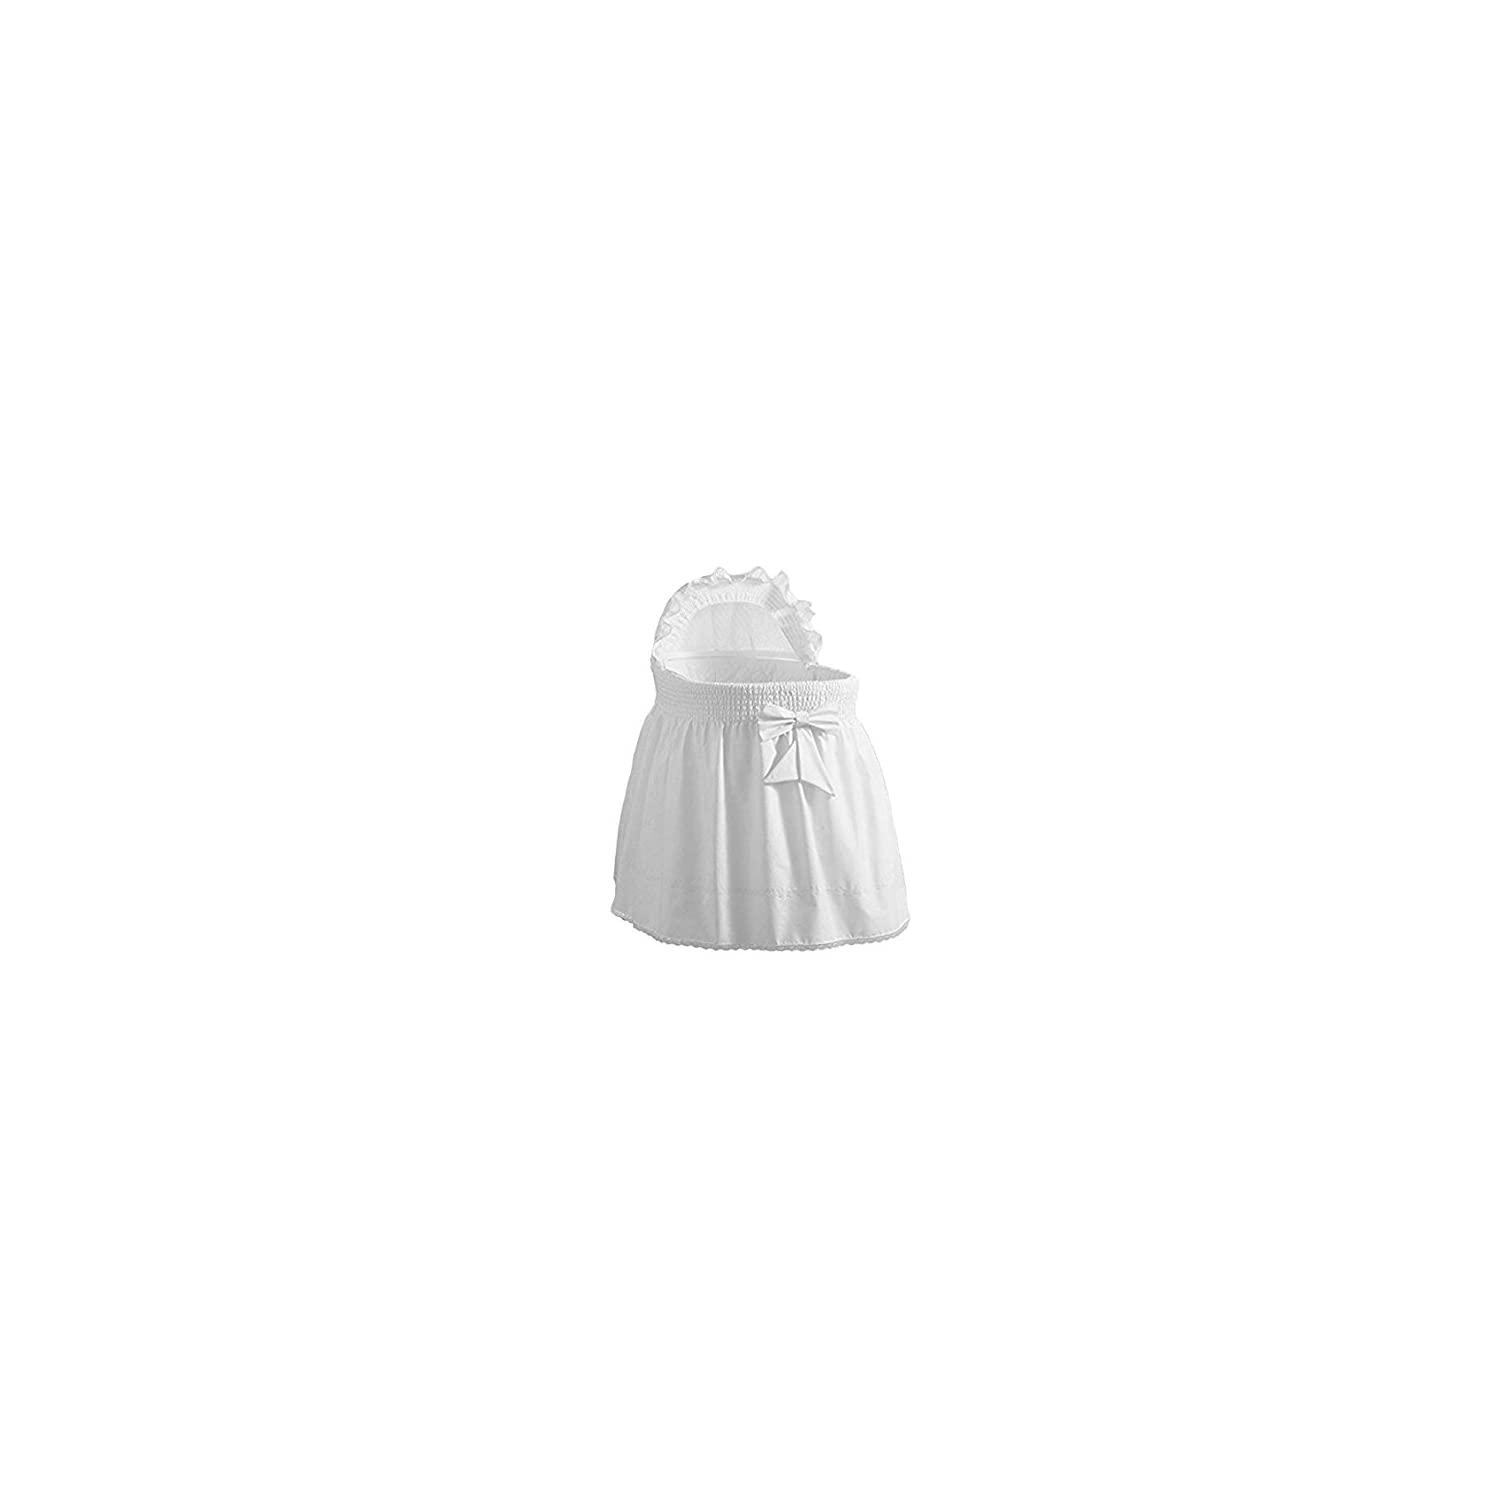 Babydoll Precious Bassinet Set, White (Includes Frame and Mattress, no Additional Bassinet Needed)